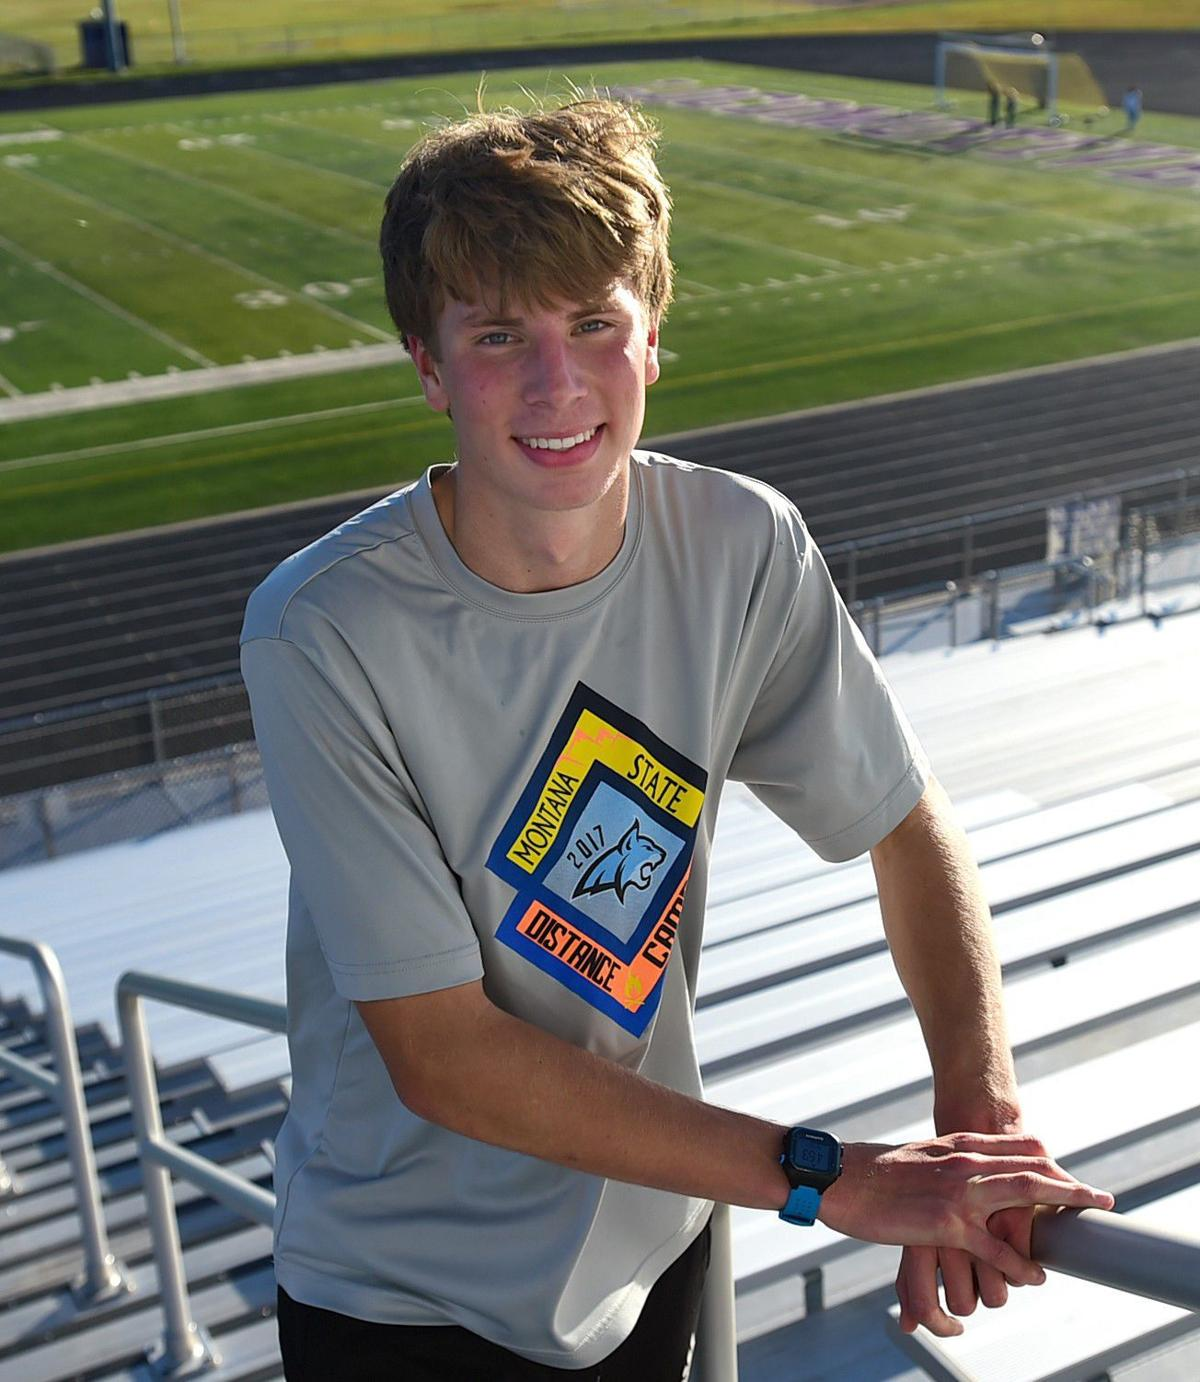 Levi Taylor follows in footsteps of Laurel running greats